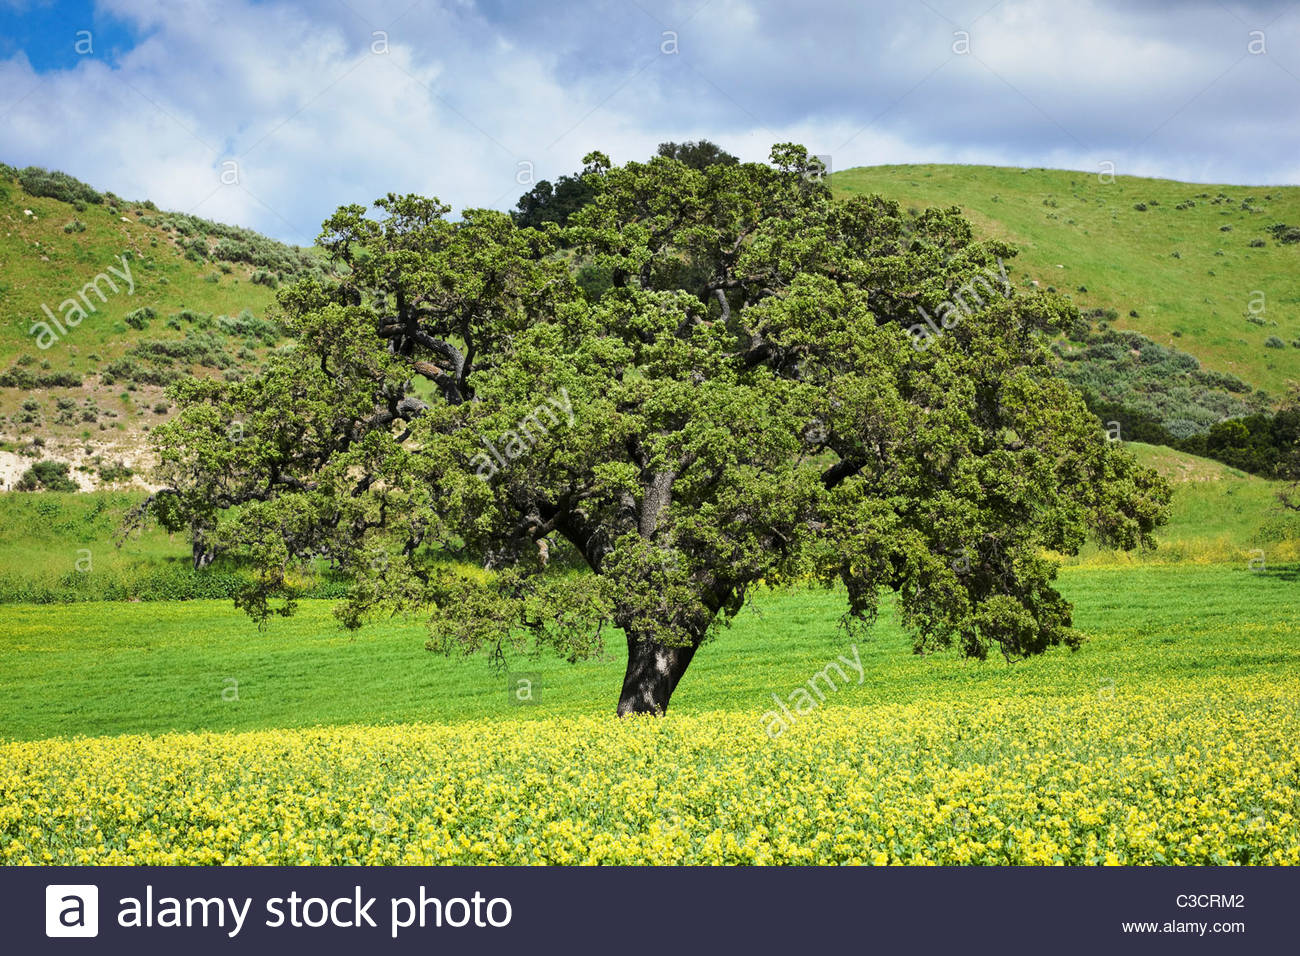 mustard-flowers-and-oak-tree-in-chaparral-landscape-los-olivos-california-C3CRM2